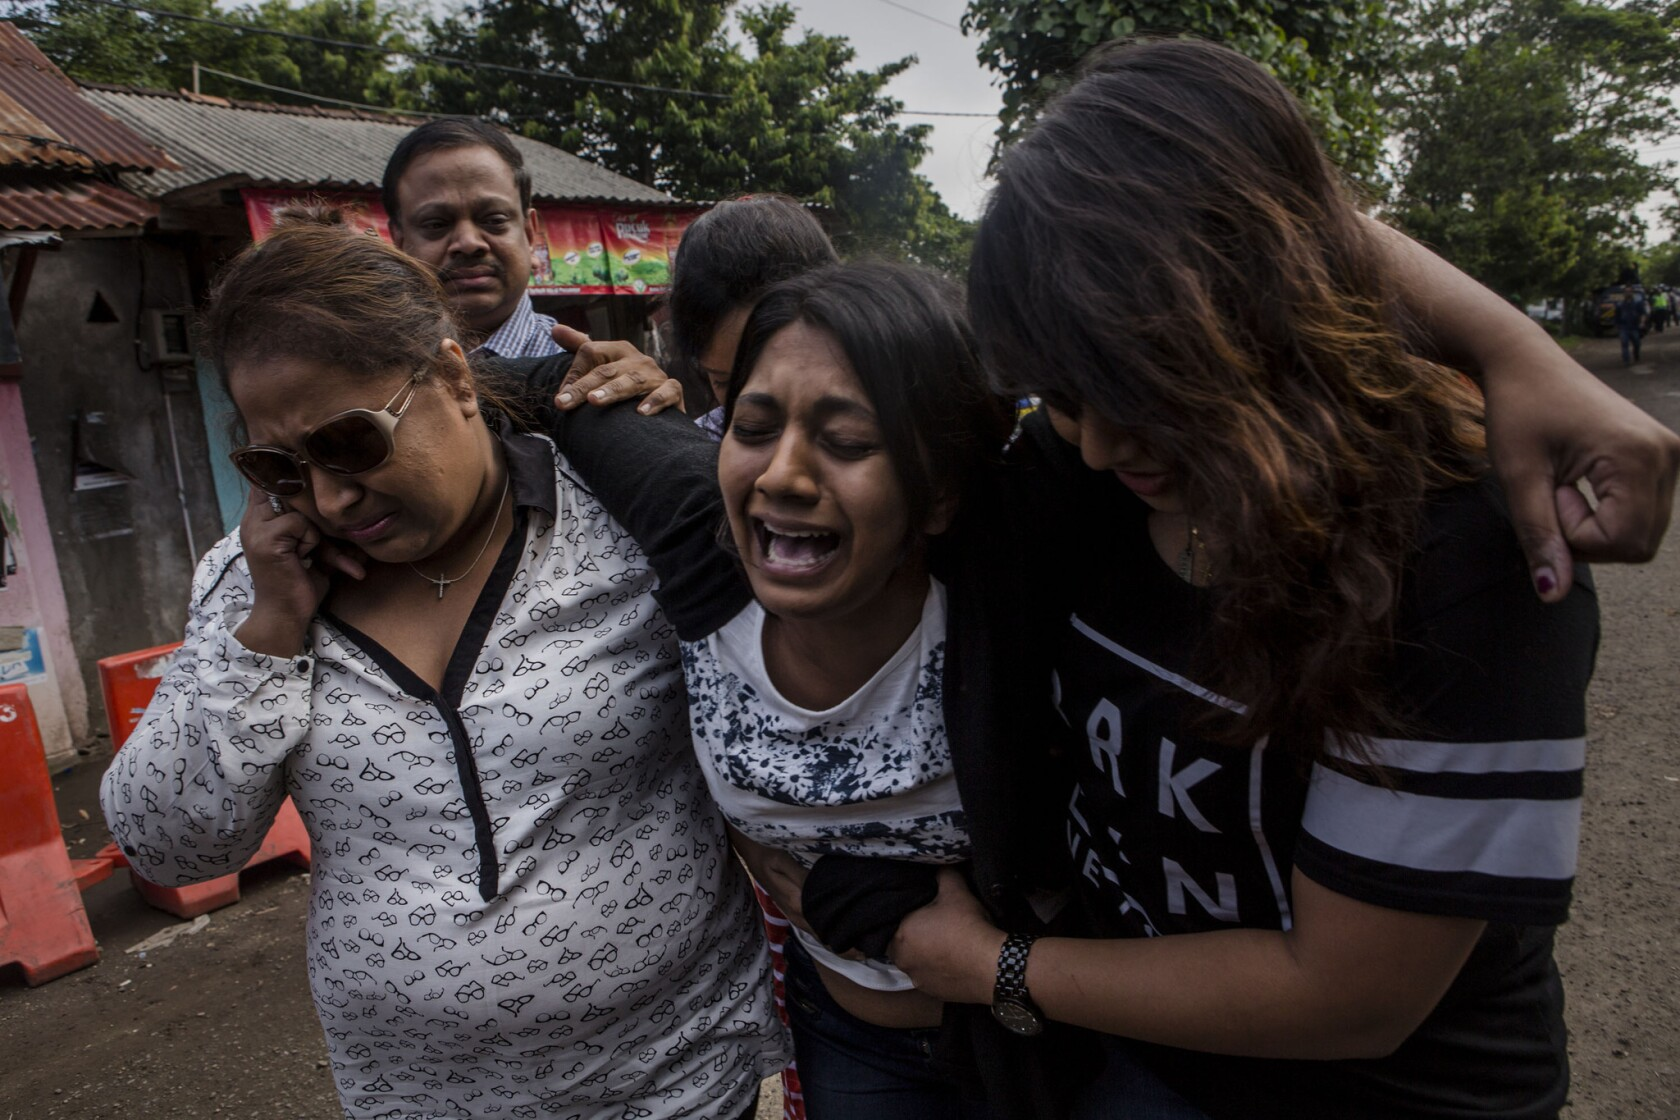 Indonesia reportedly executes 8, grants one woman stay - Los